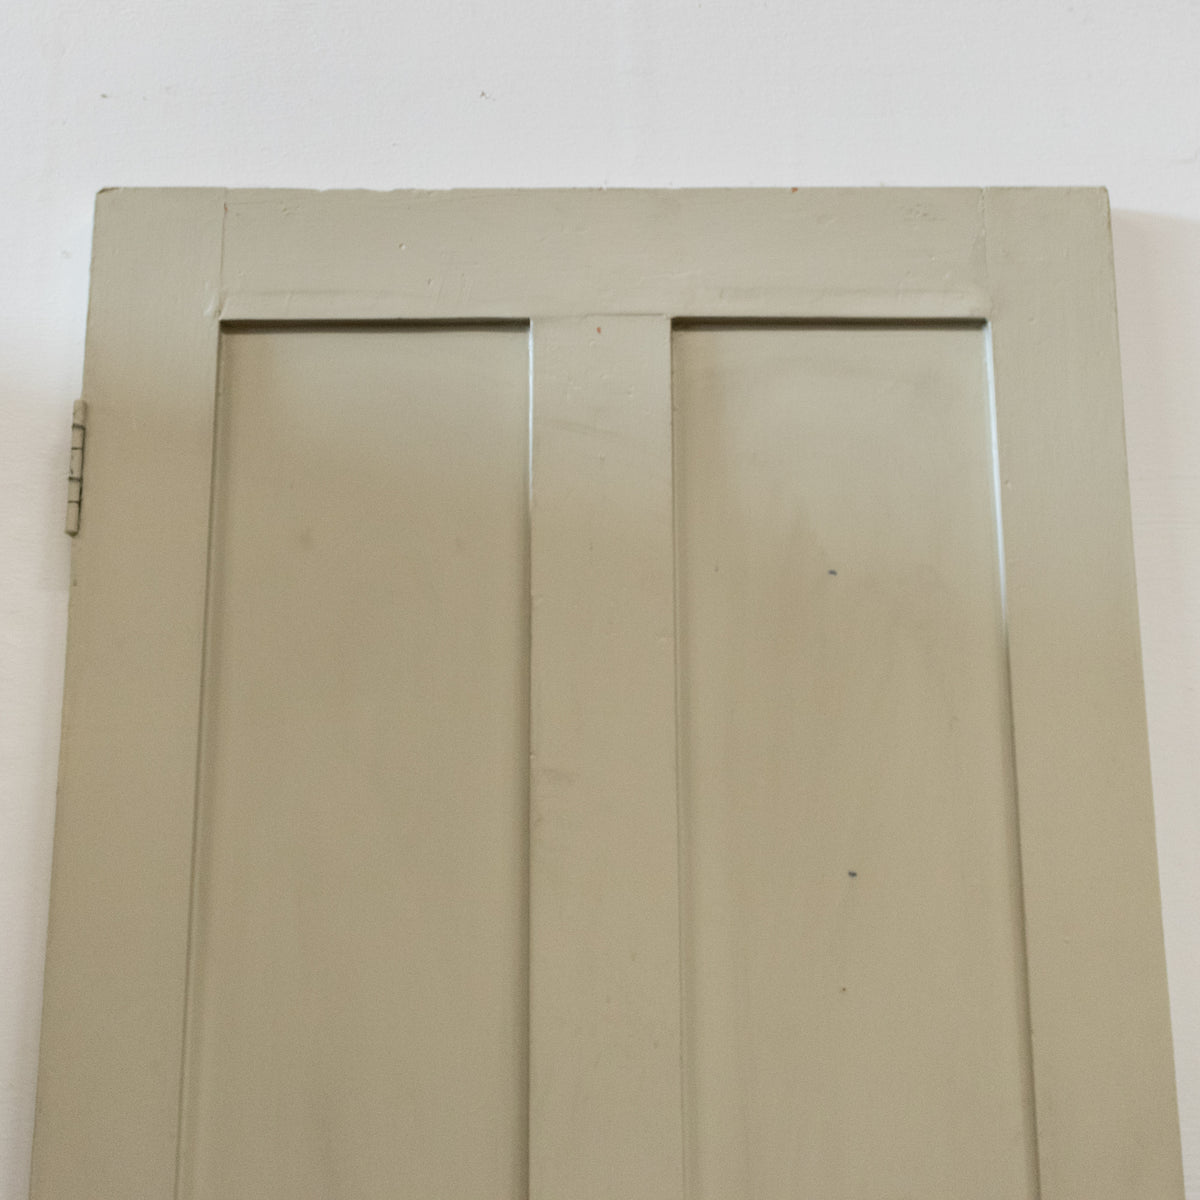 Antique Victorian 4 Panel Door - 200cm x 80cm | The Architectural Forum